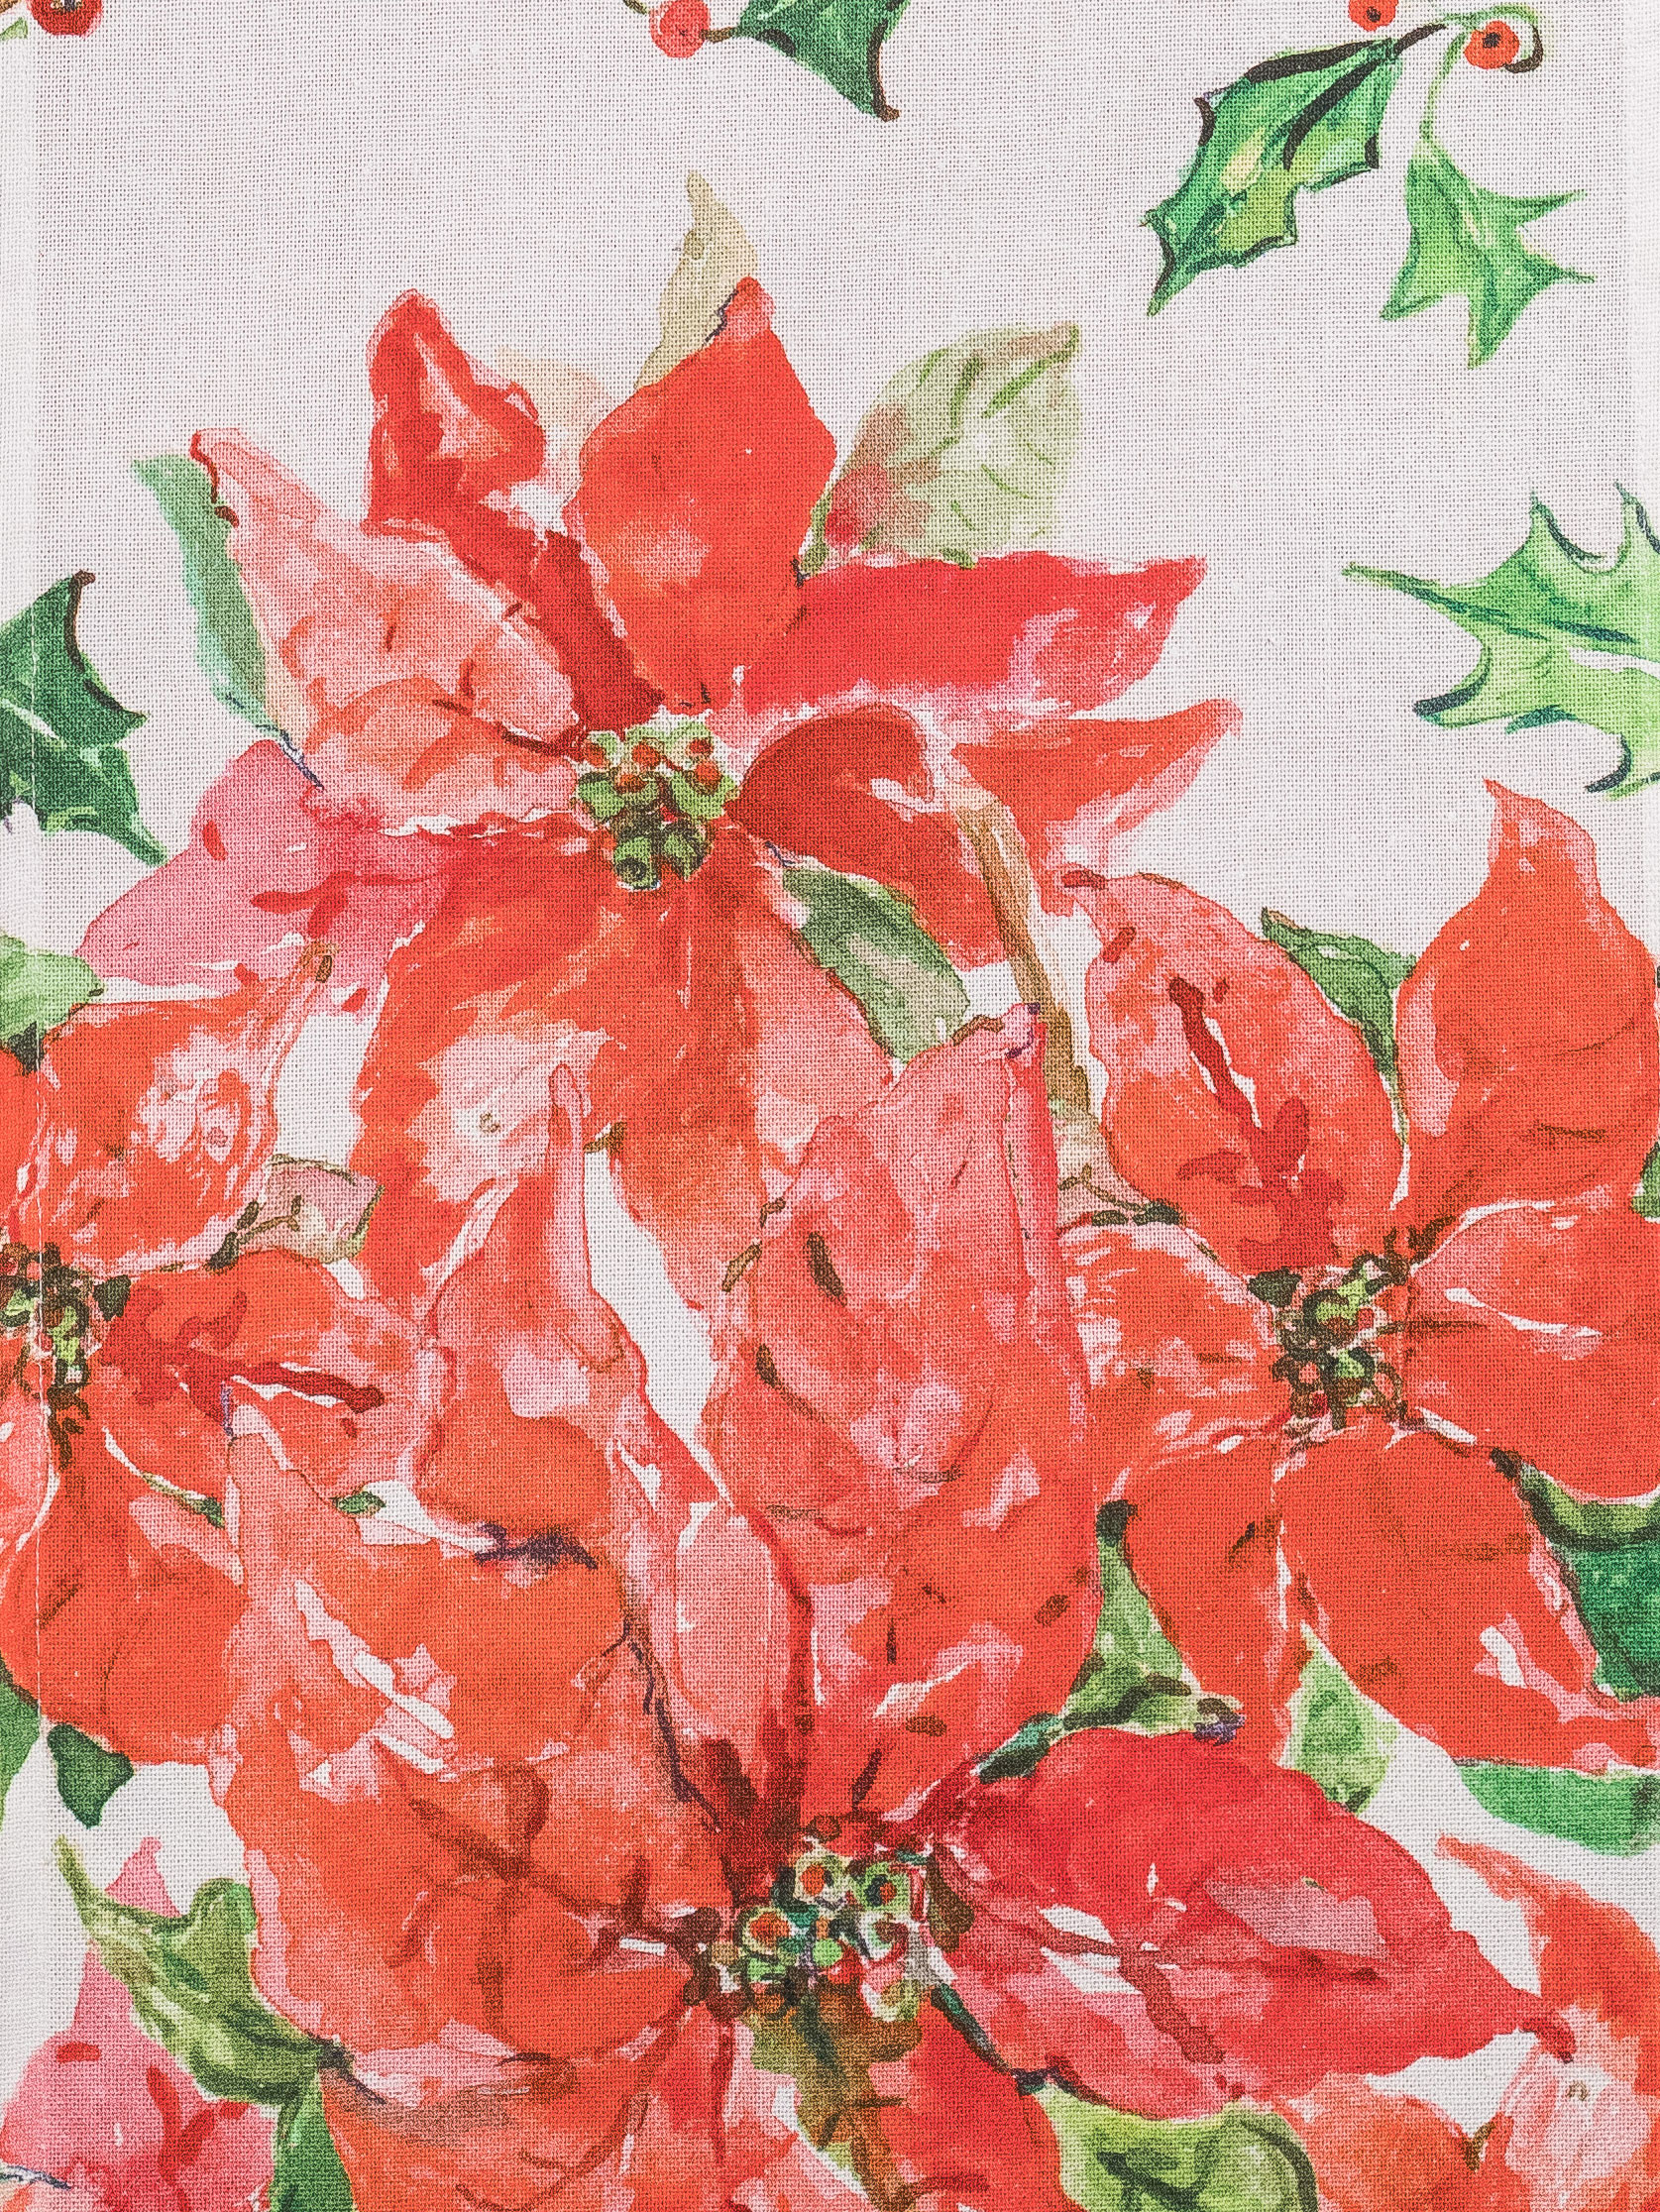 April Cornell Bedding Poinsettia Table Runner | Linens & Kitchen, Placemats ...